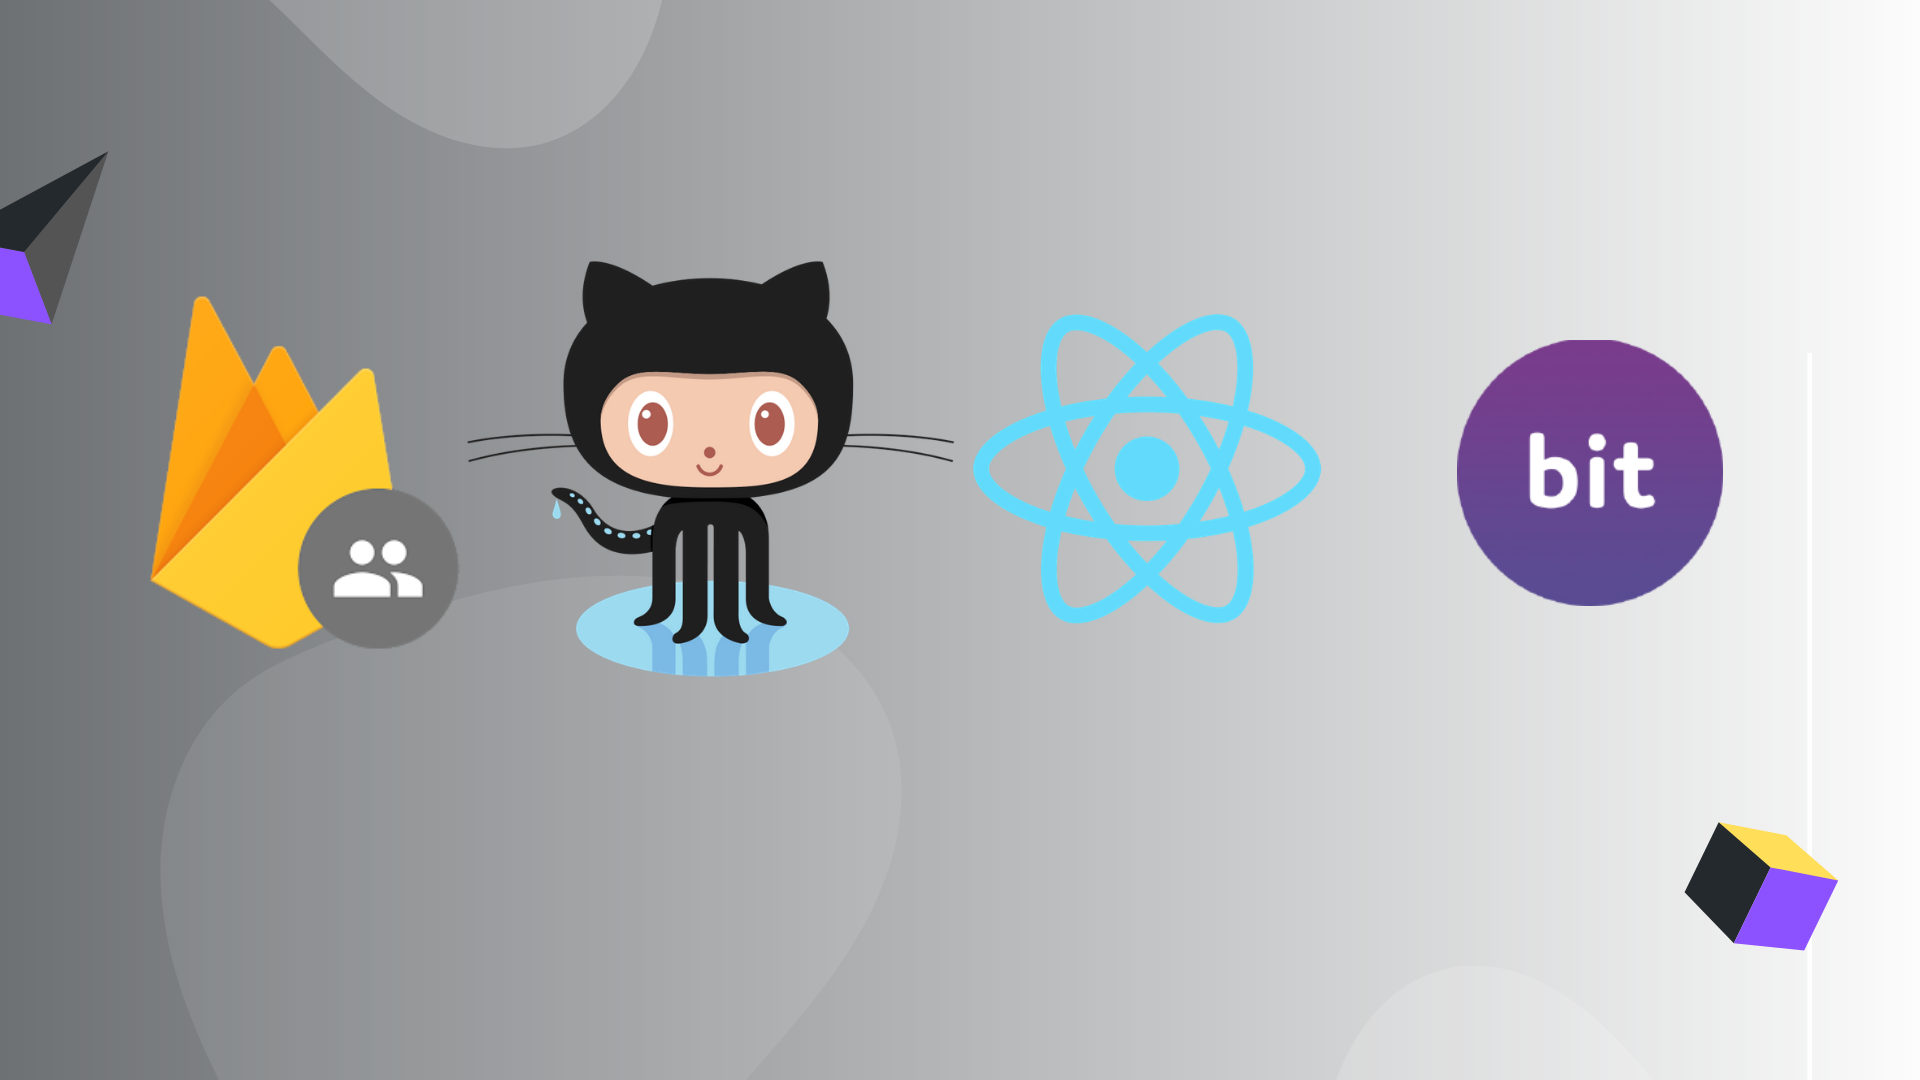 Github Authentication with Firebase | React | Bit